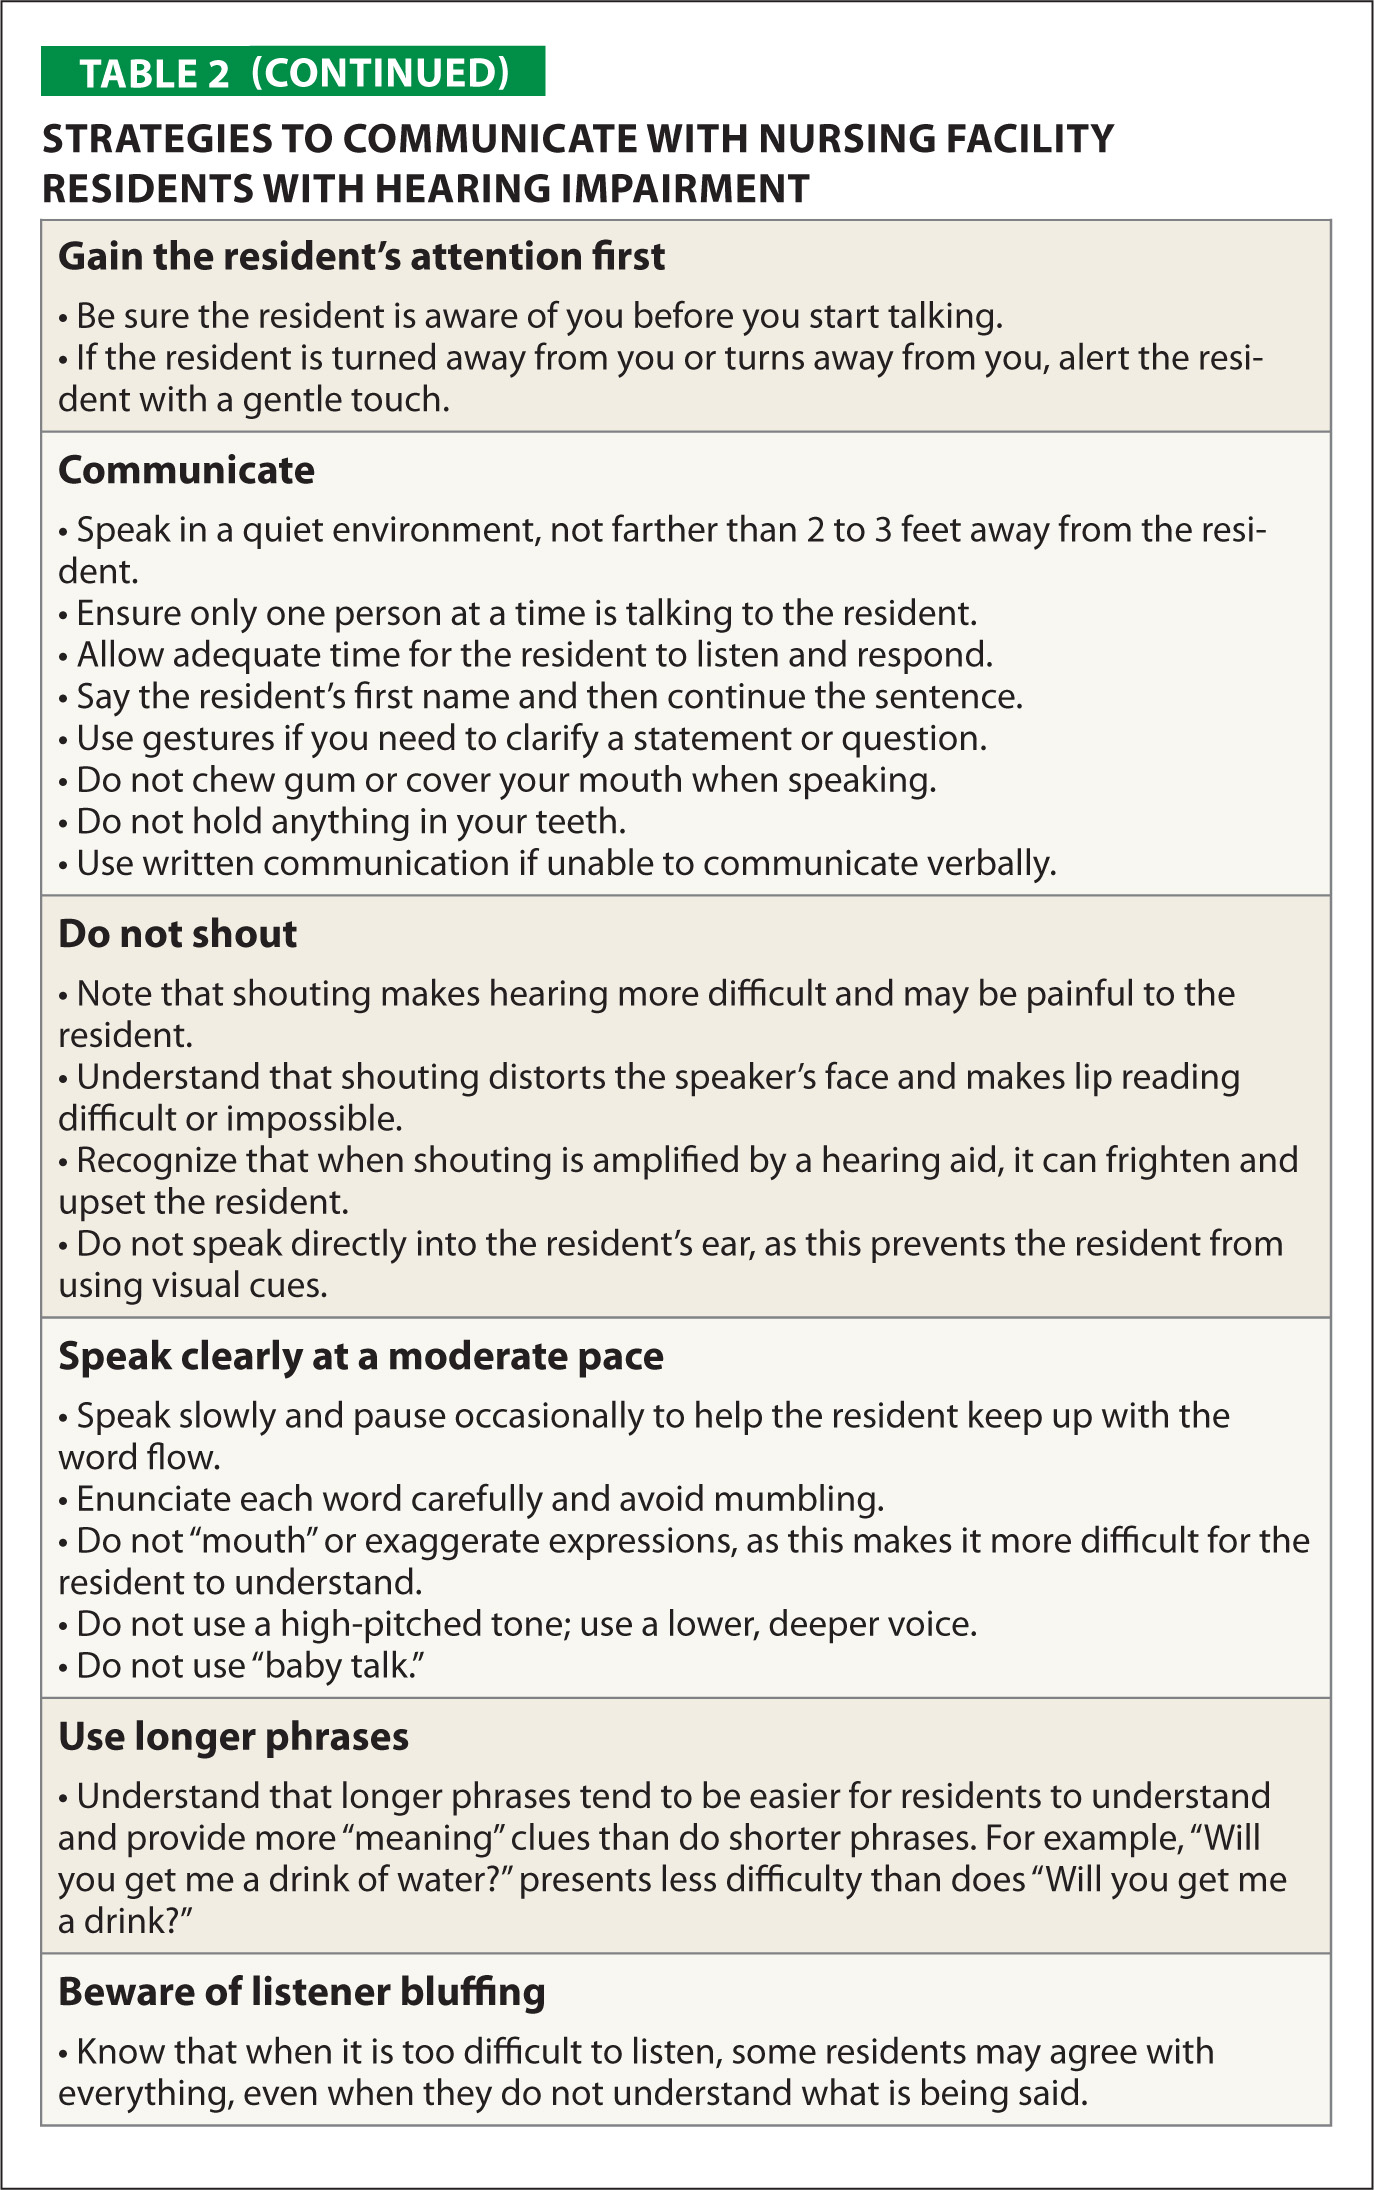 Strategies to Communicate with Nursing Facility Residents with Hearing Impairment